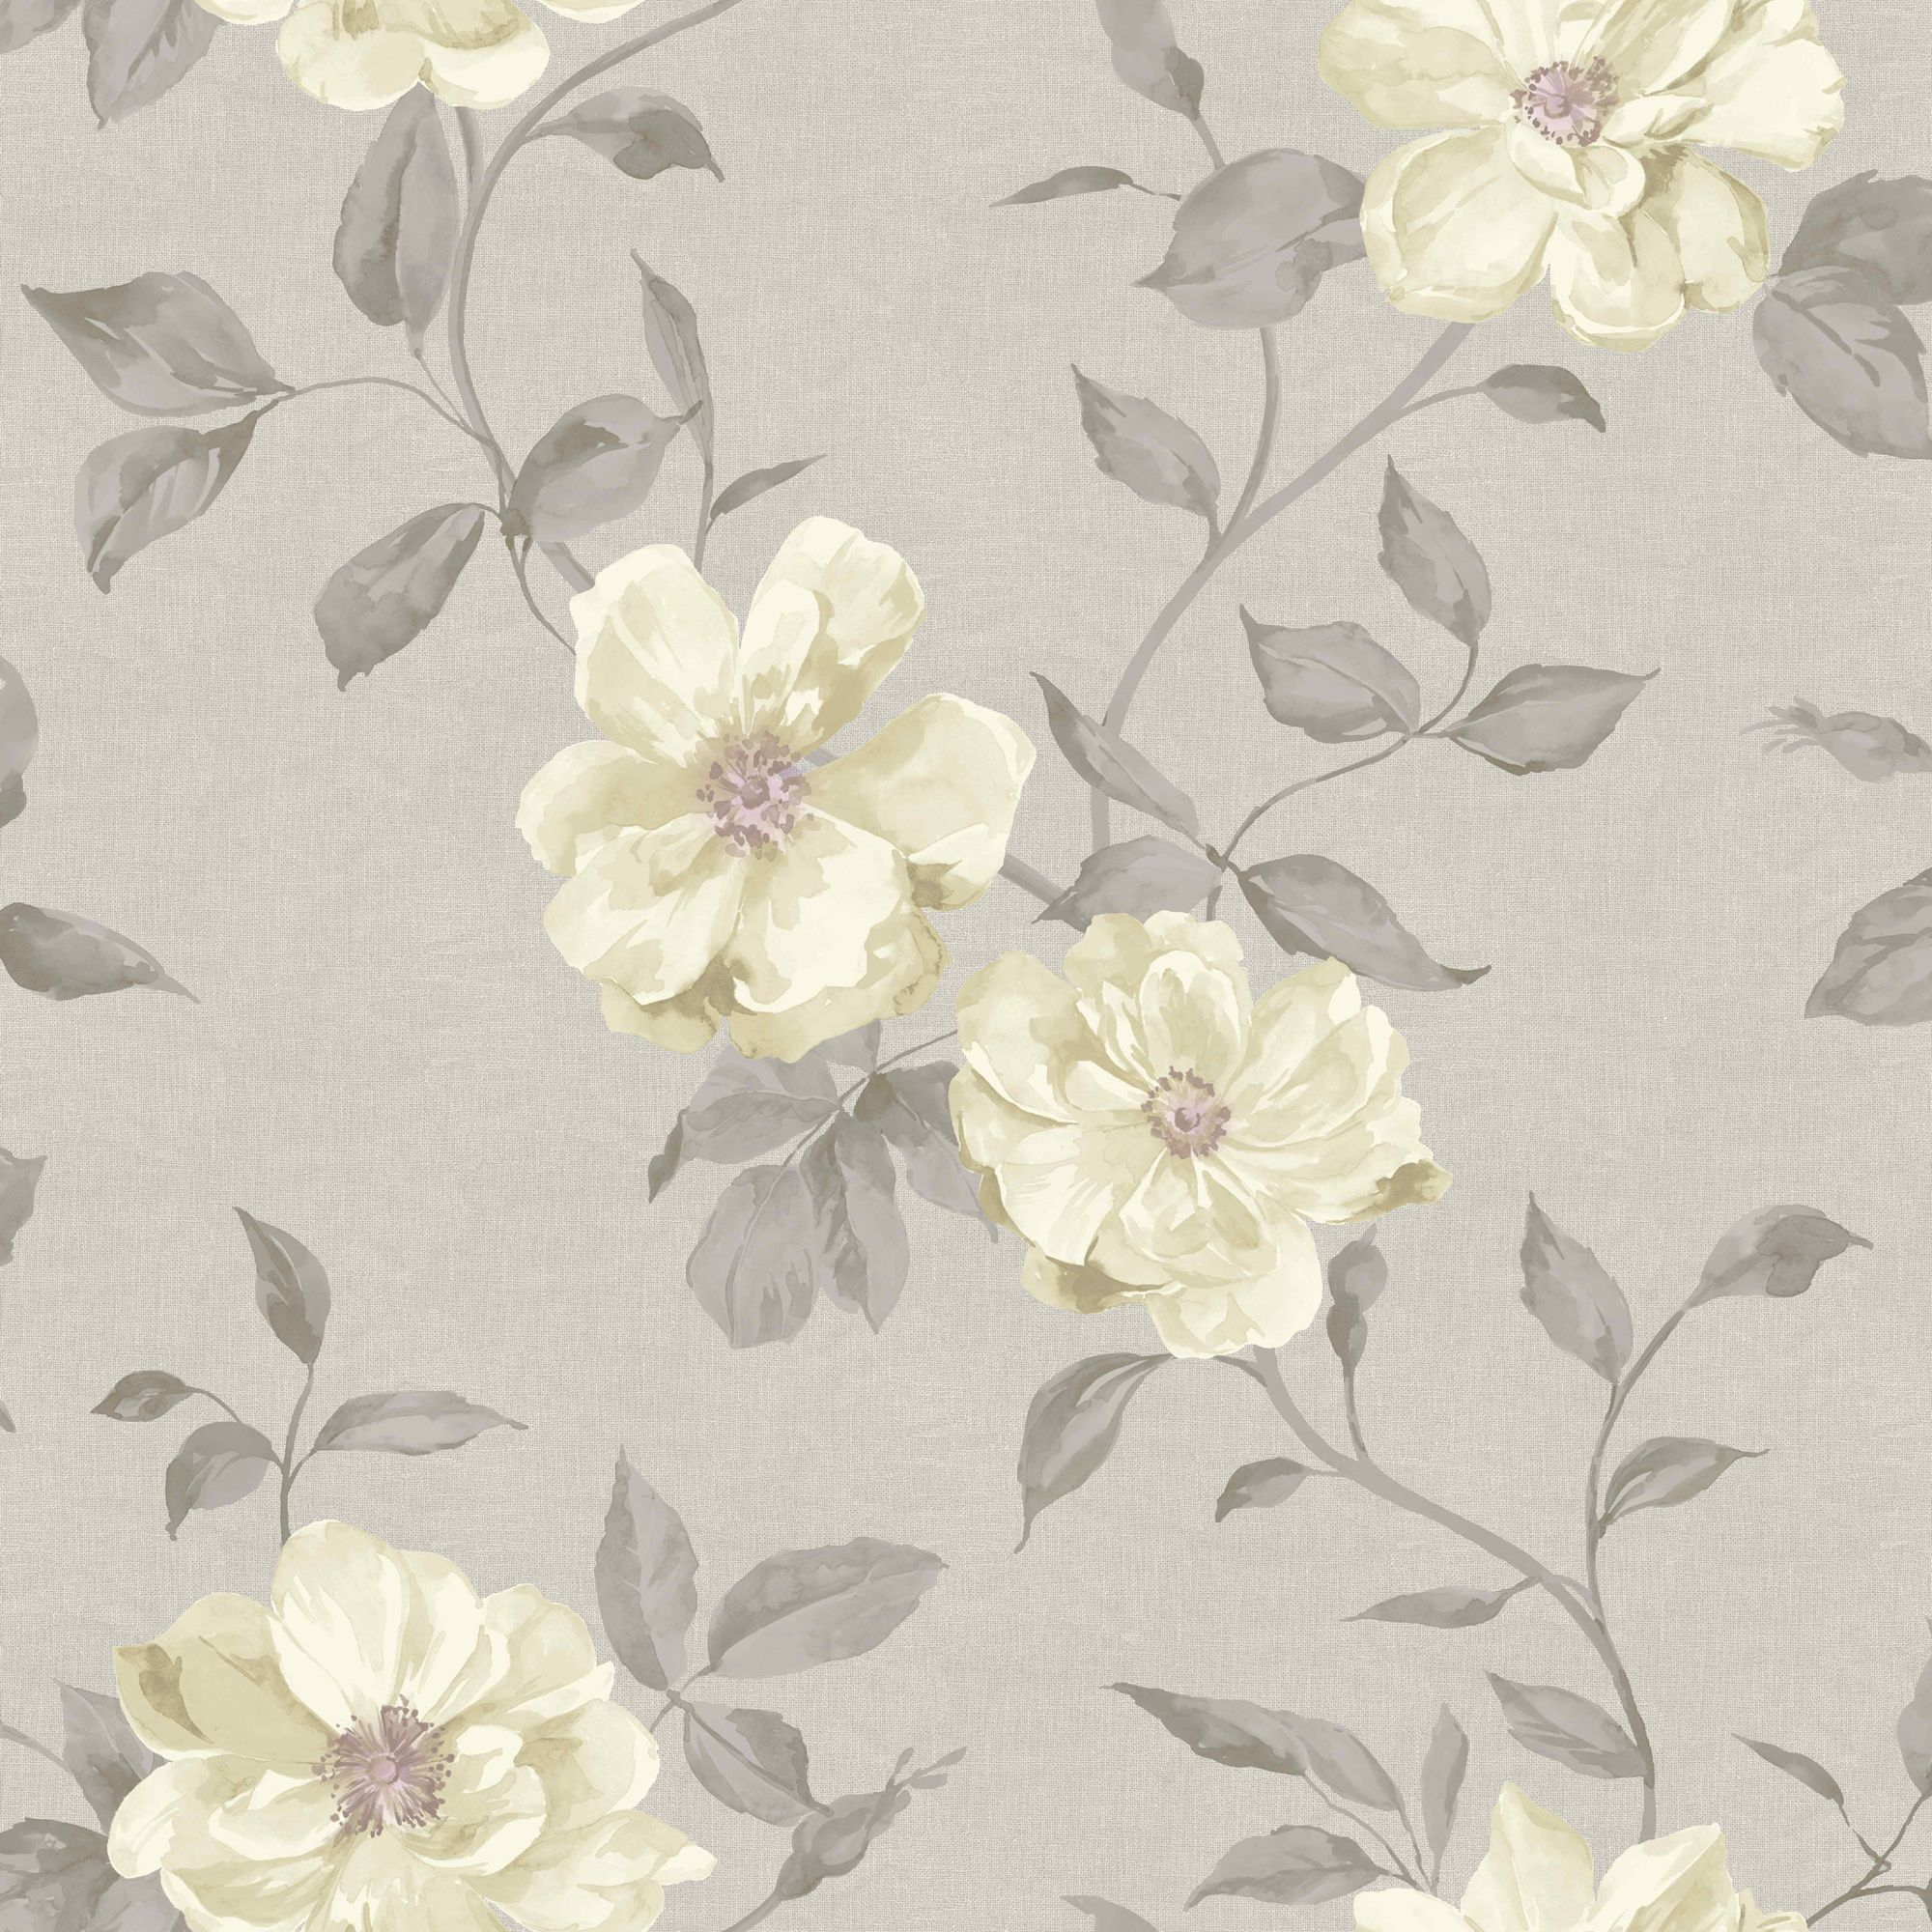 Grandeco Chloe Grey Floral Mica Wallpaper Wallpaper Floral And Grey